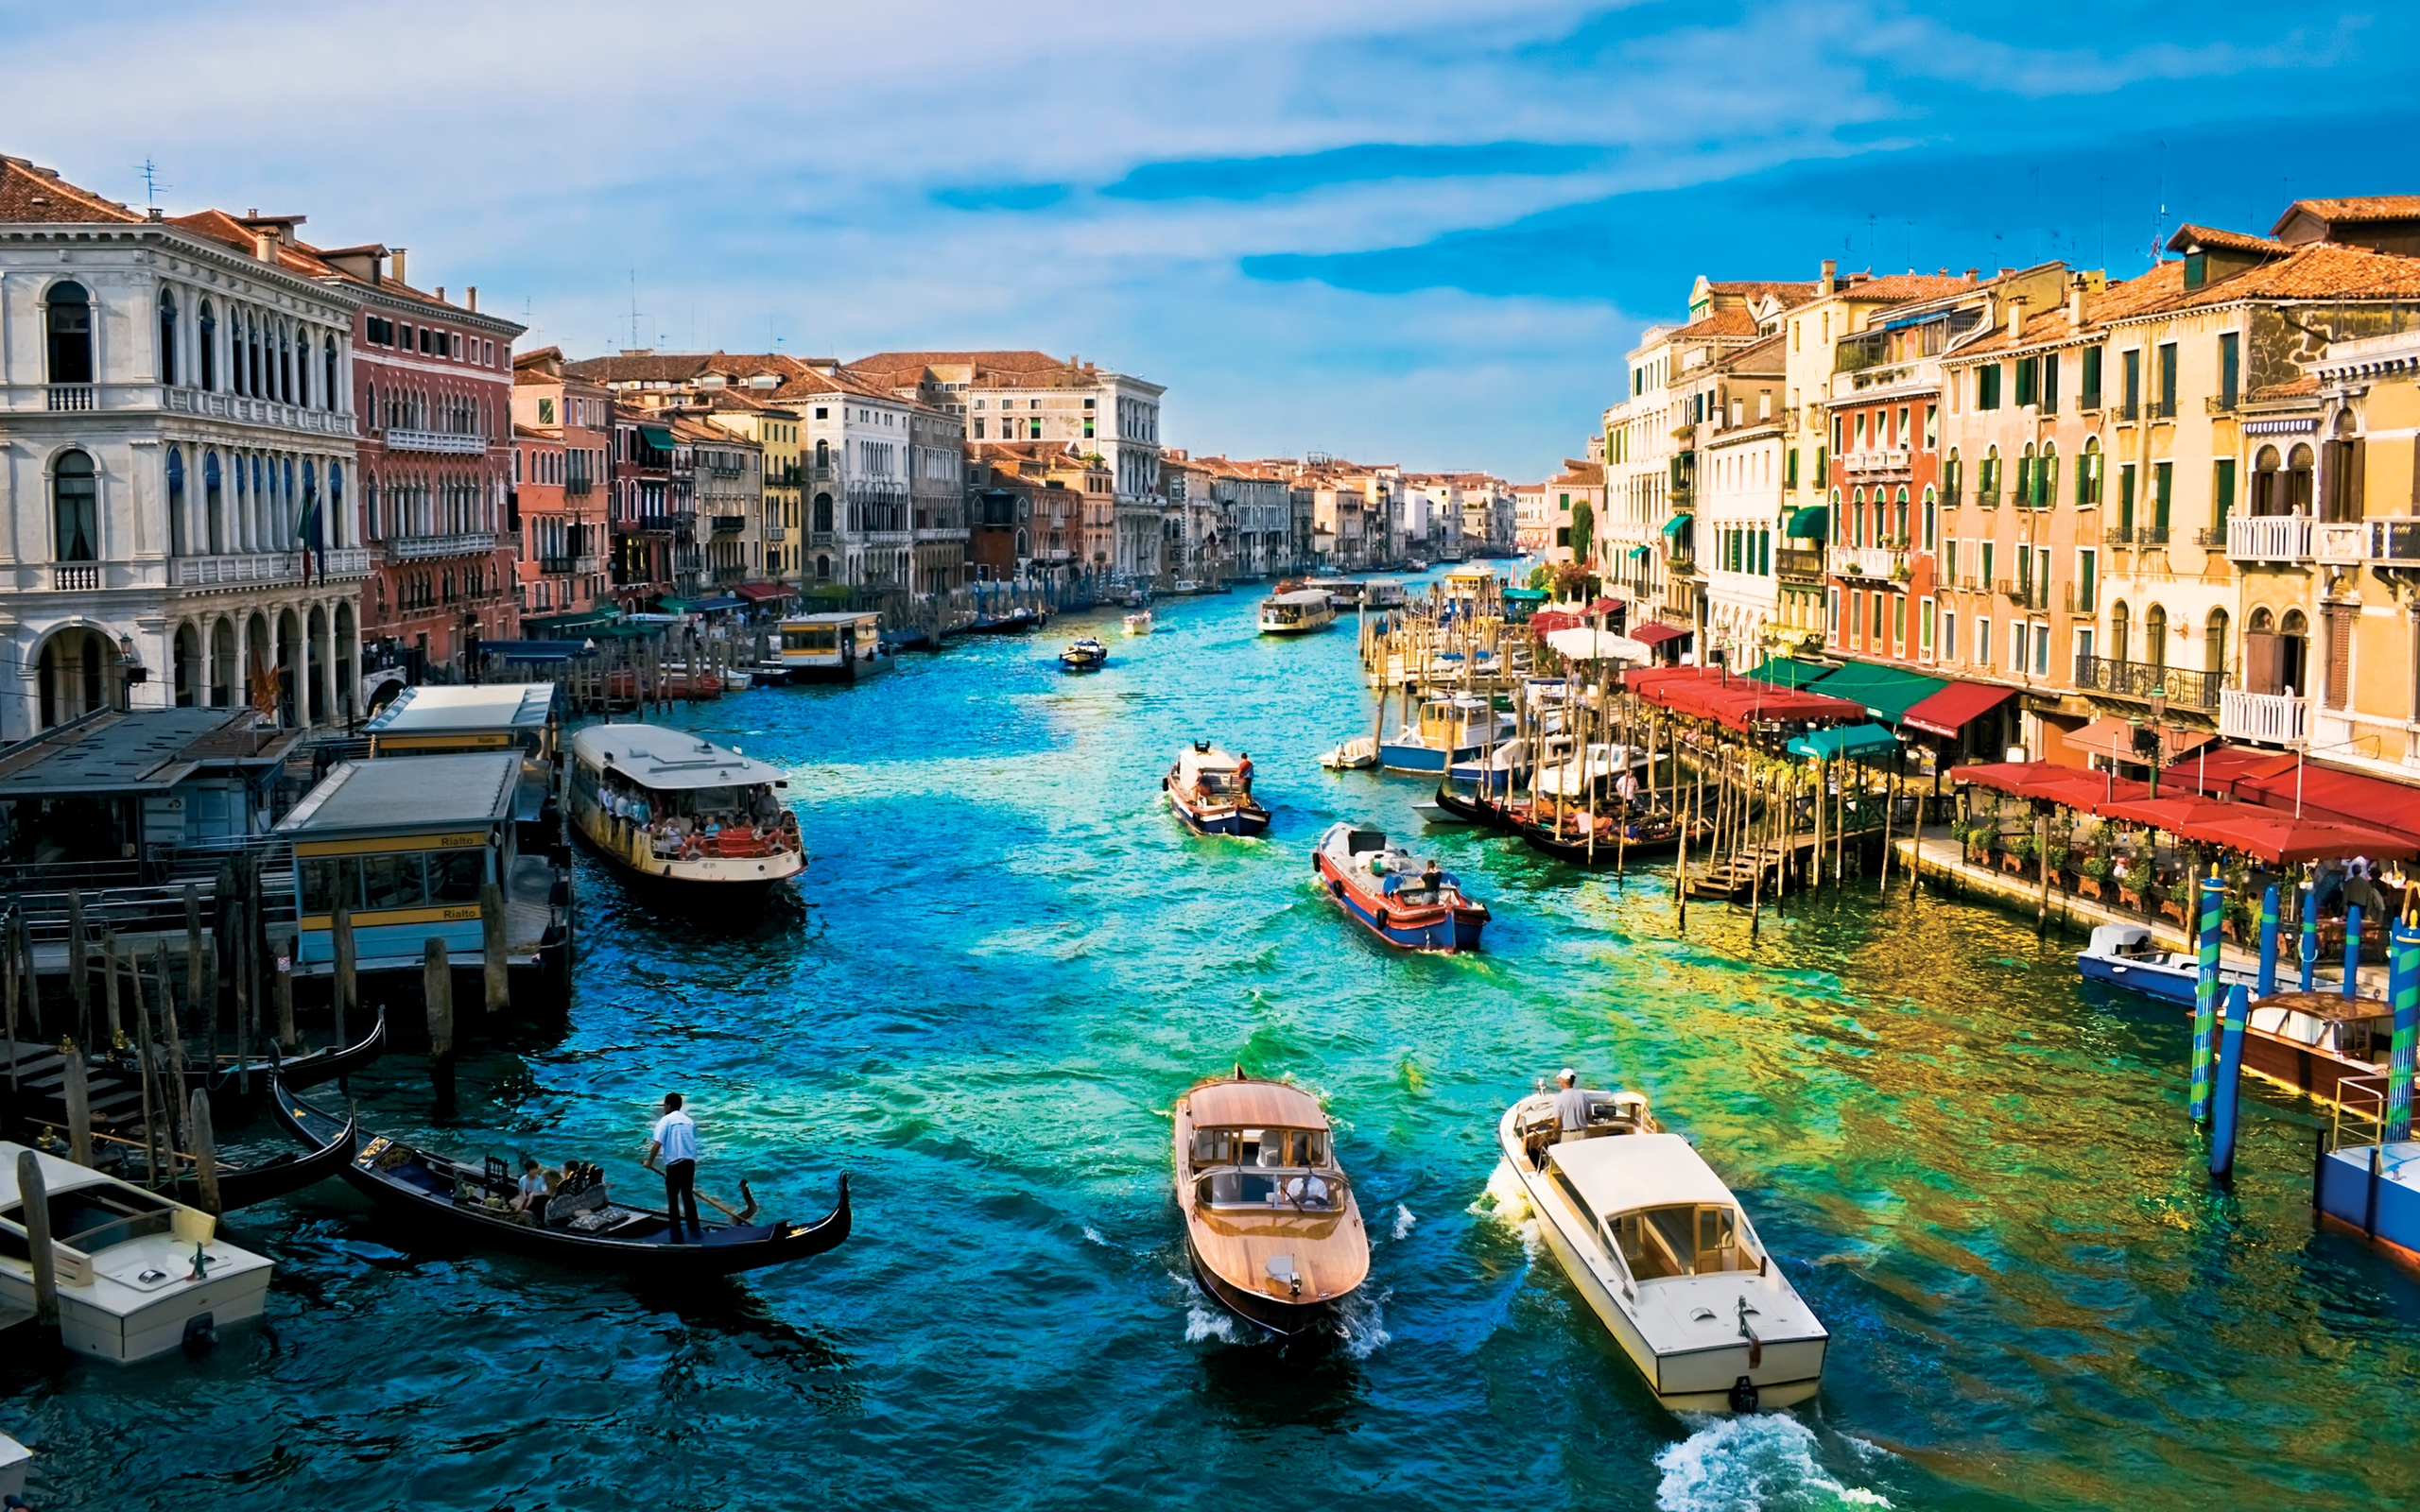 Venice wallpaper high resolution HD Desktop Wallpaper 2560x1600